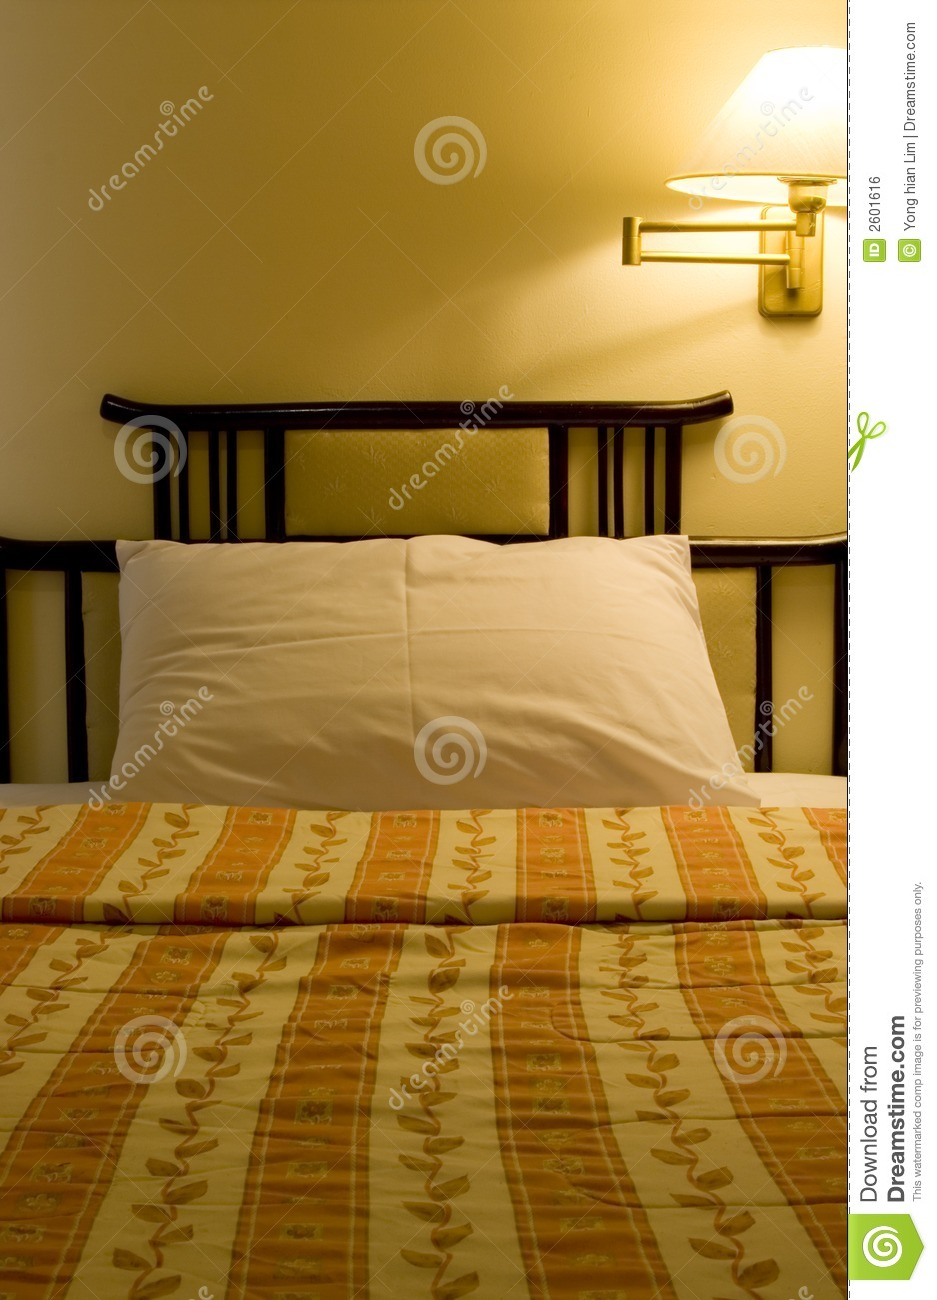 Single Bed In A Hotel Room Royalty Free Stock Image